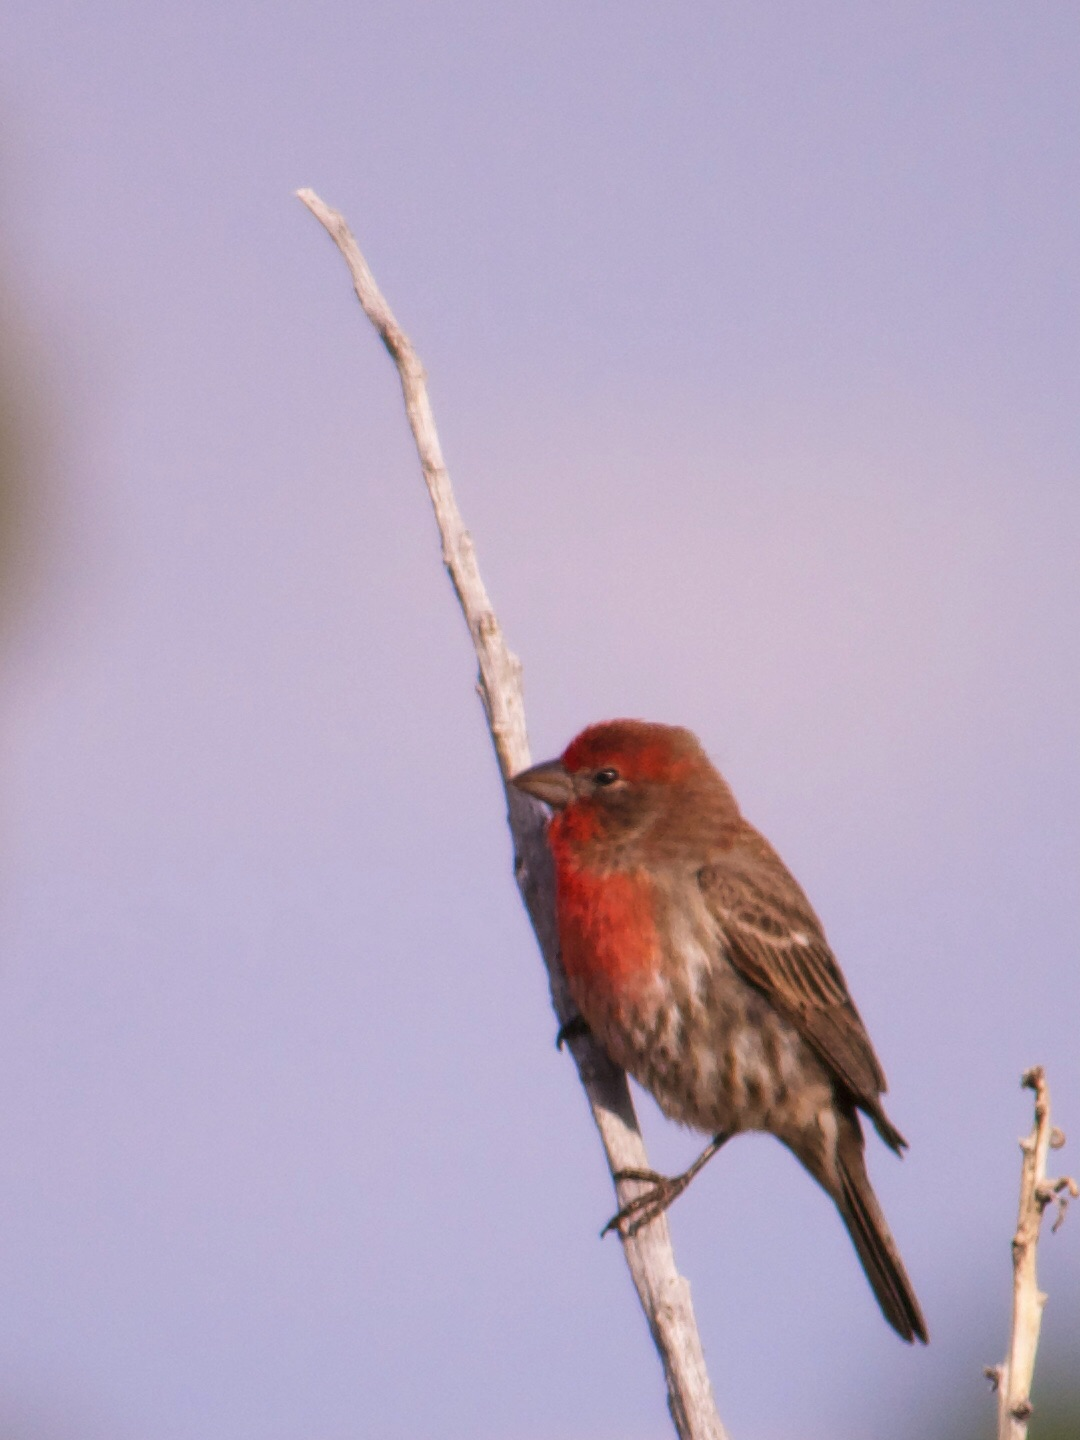 House finch, perched on a yucca stalk